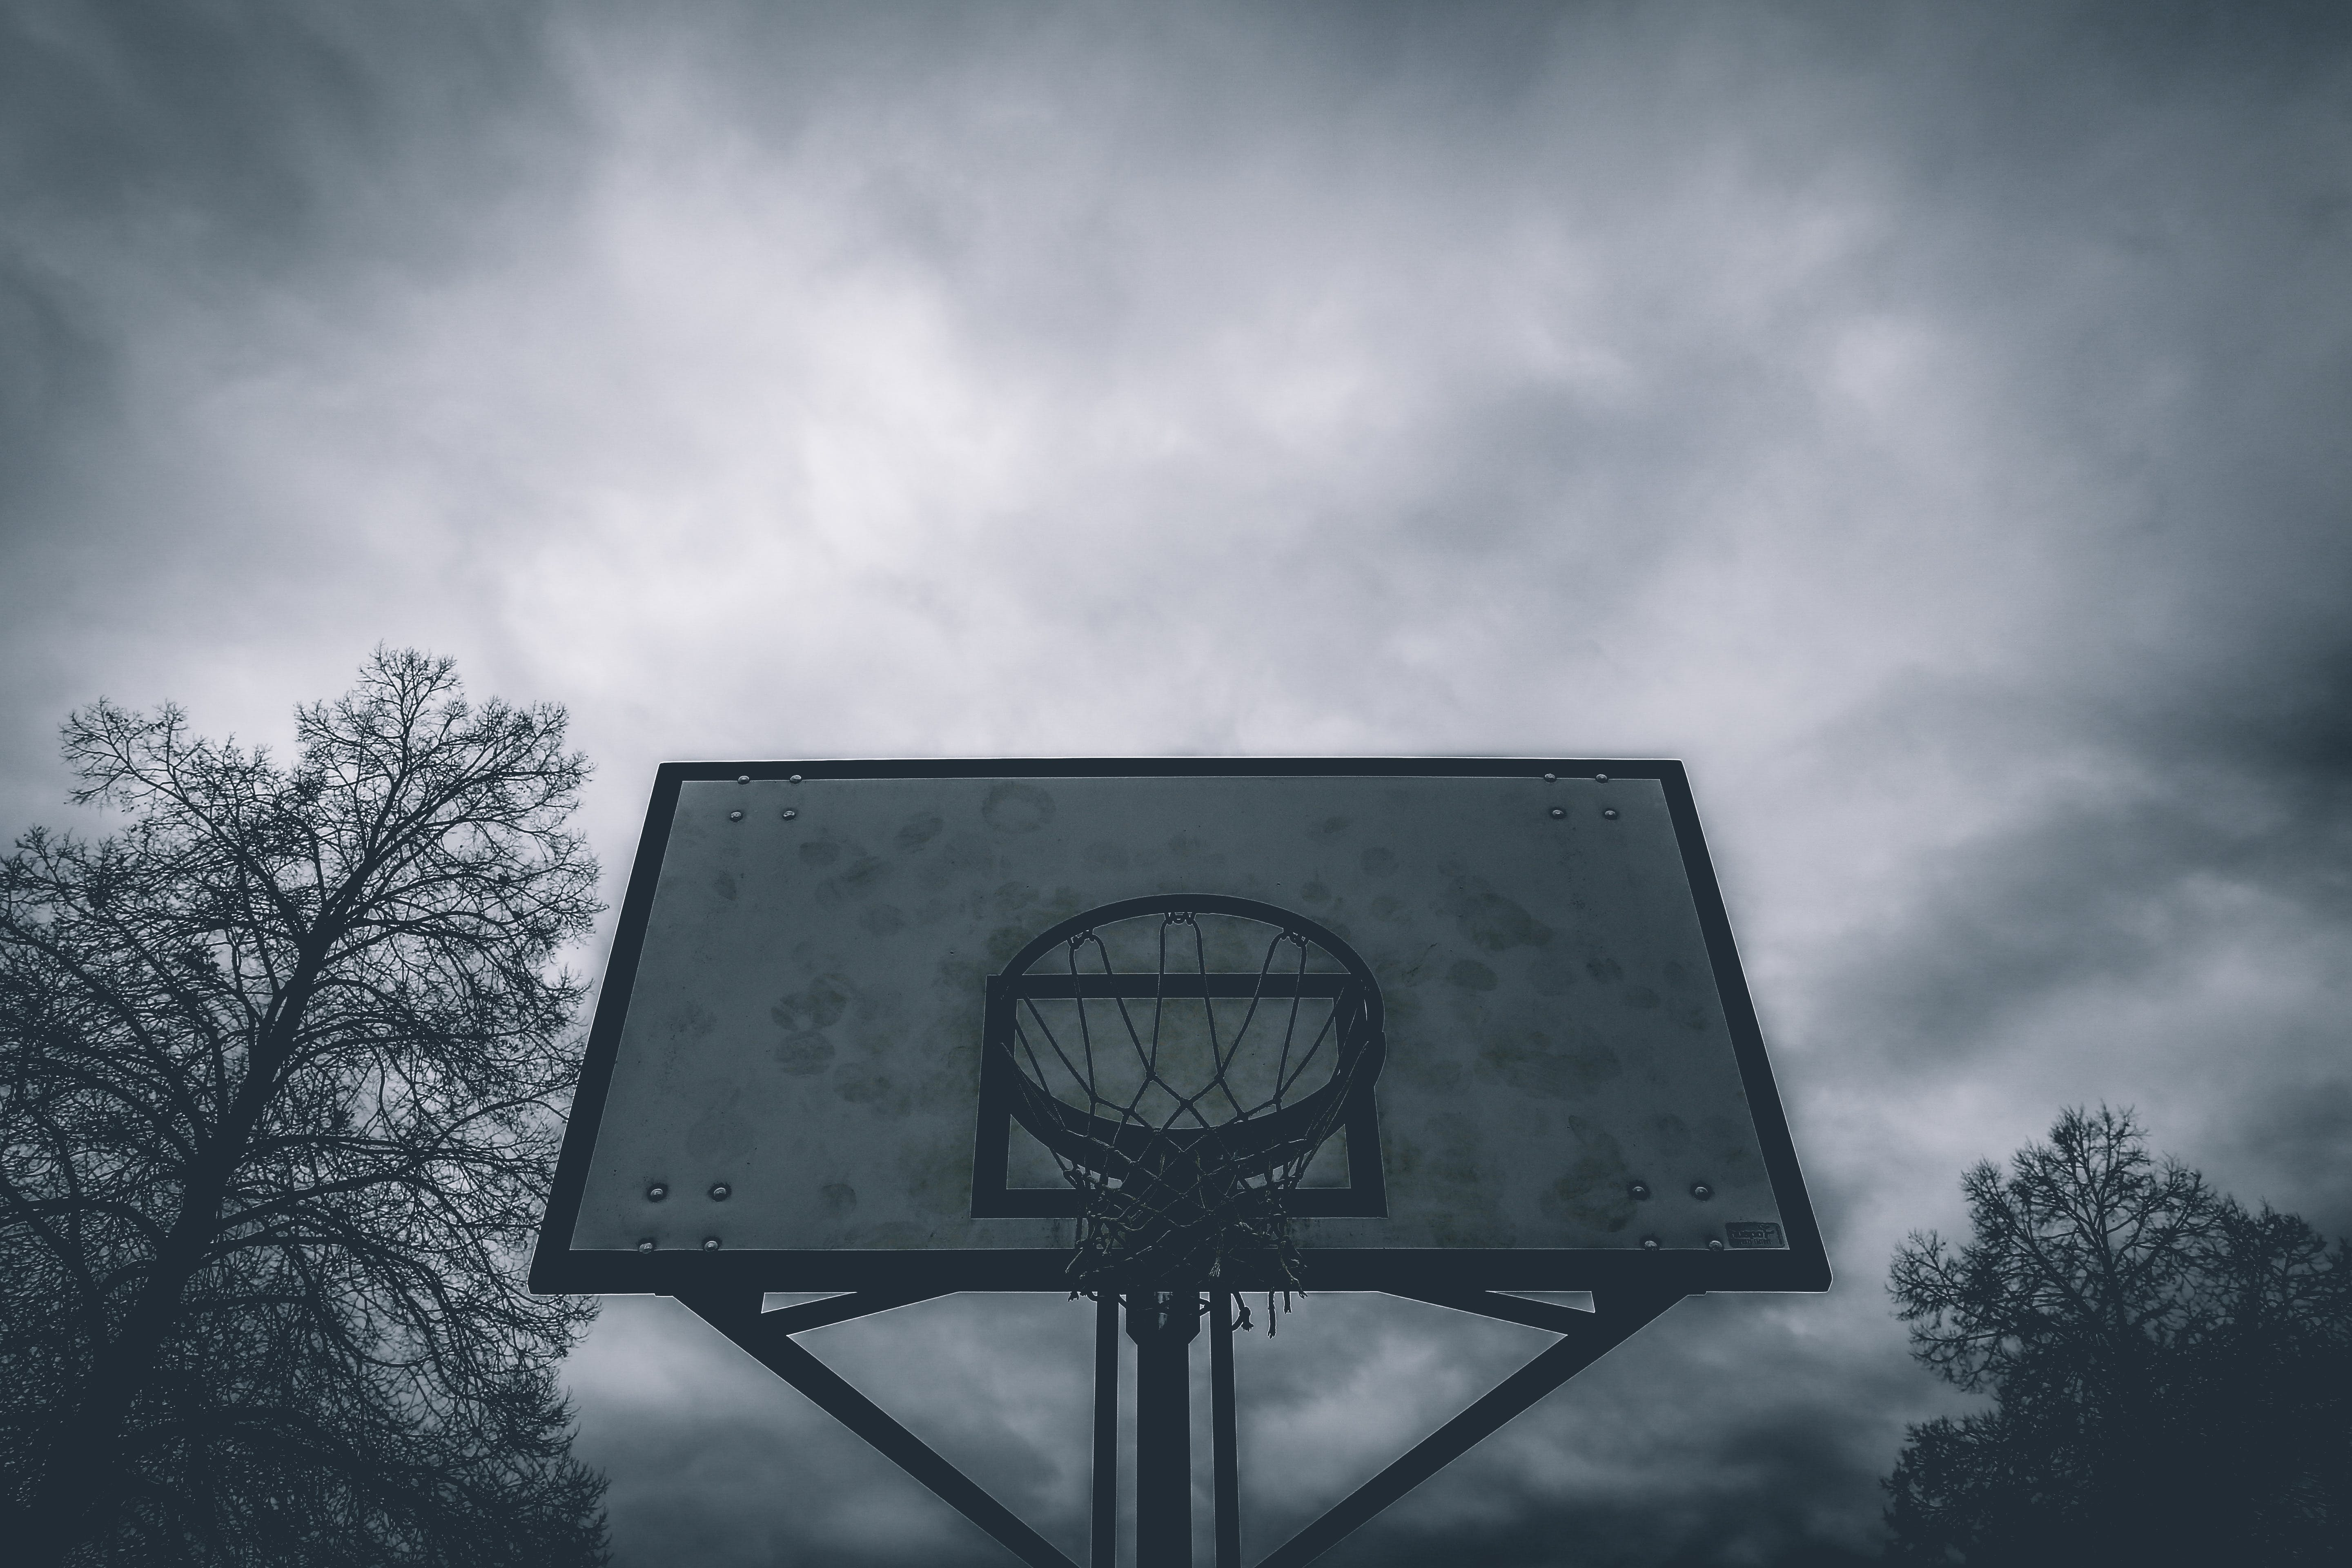 Silhouette Photo of Basketball Hoop